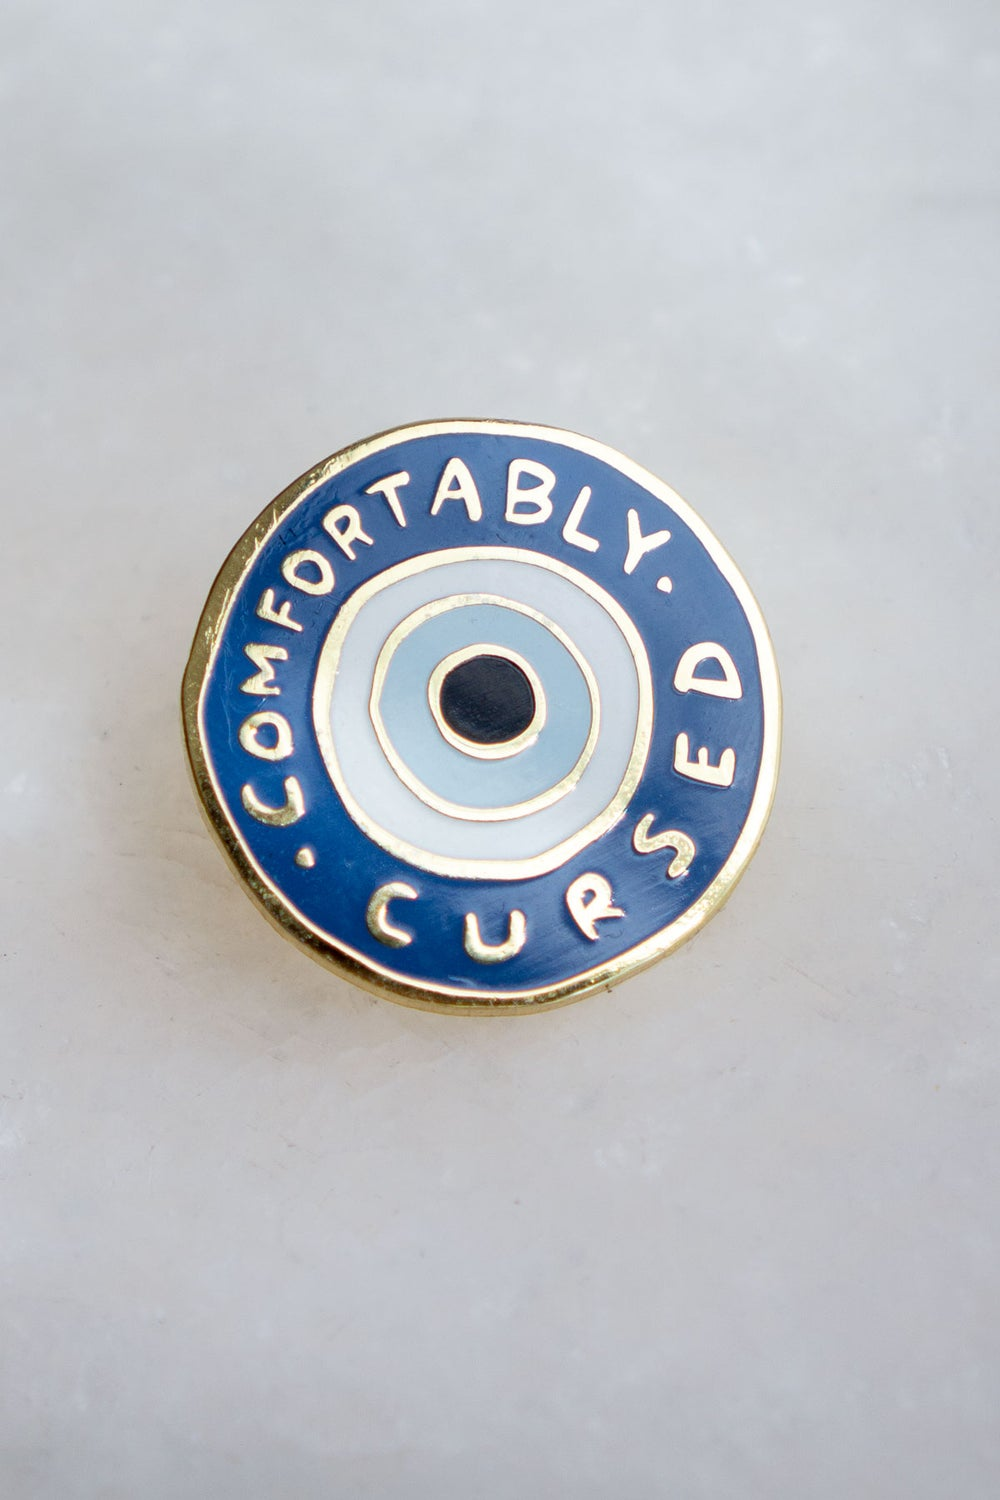 Comfortably Cursed (Stay Home Club) Enamel Pin